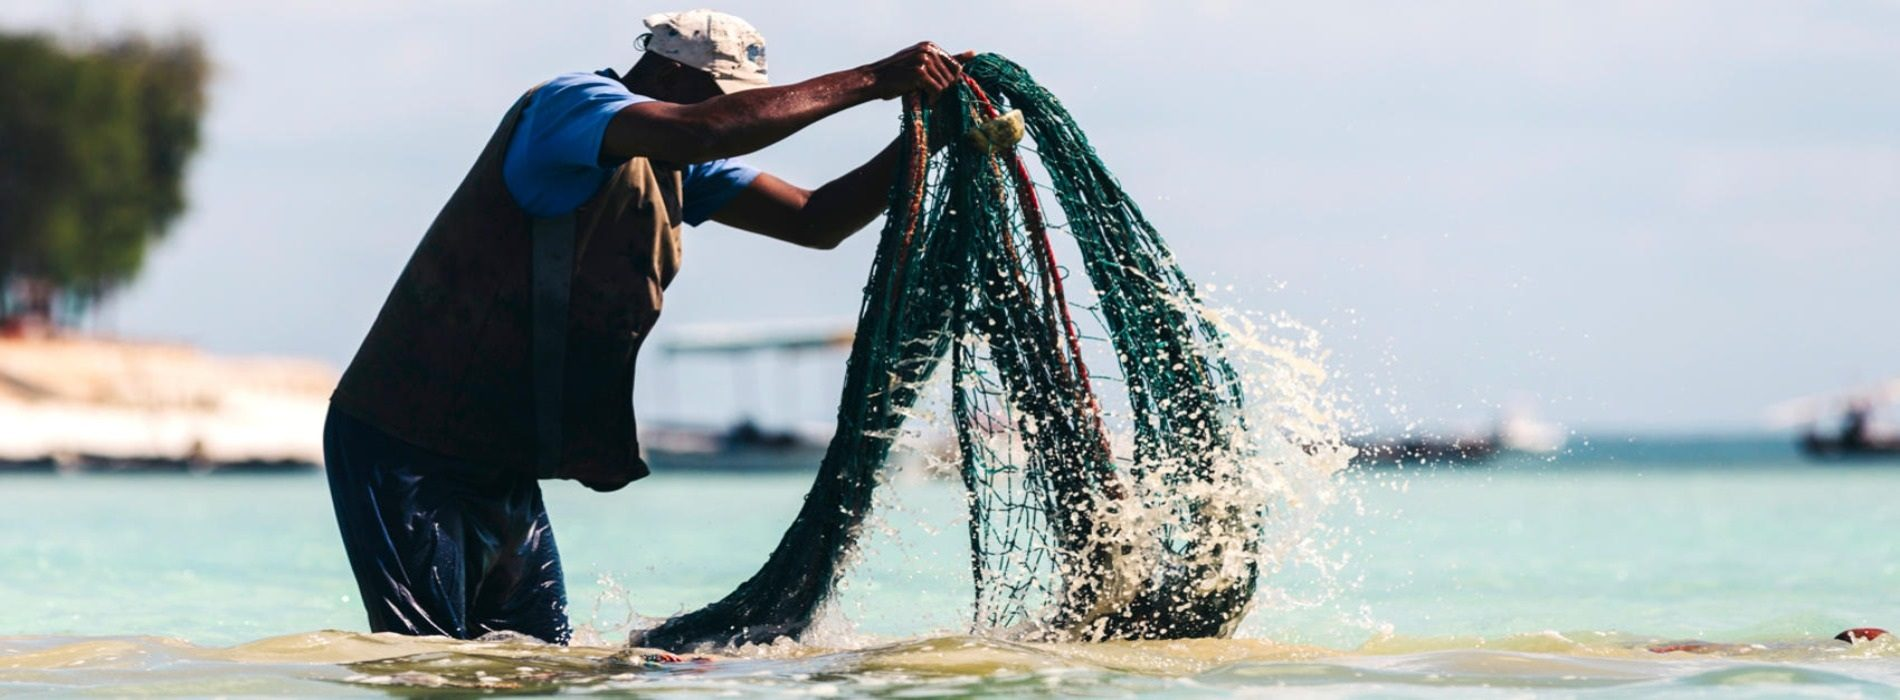 Over-exploitation of Africa's fisheries: Not enough fish in the sea